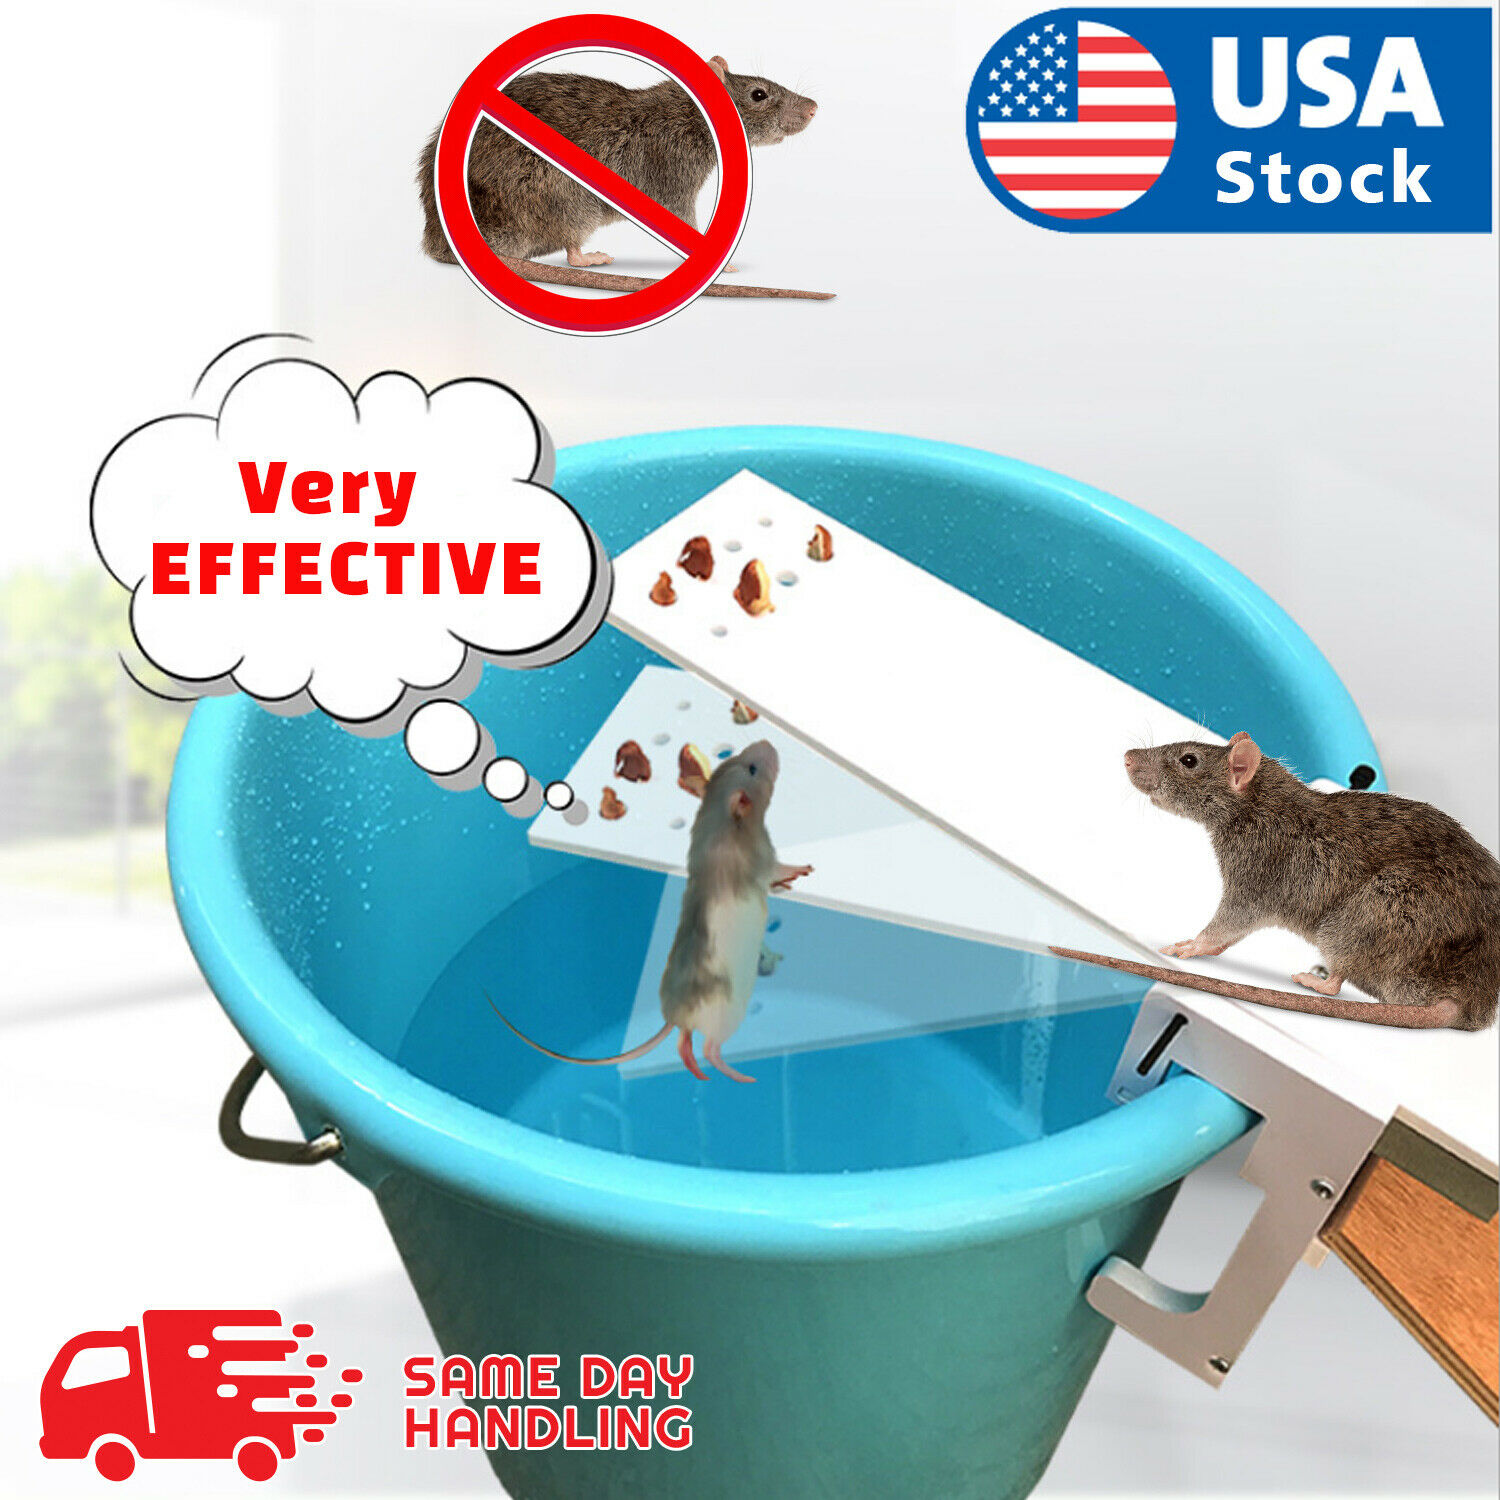 The Walk Plank Mouse Trap – Auto Reset Squirrel Rats Bait Rodent Mice Catcher Animal & Rodent Control